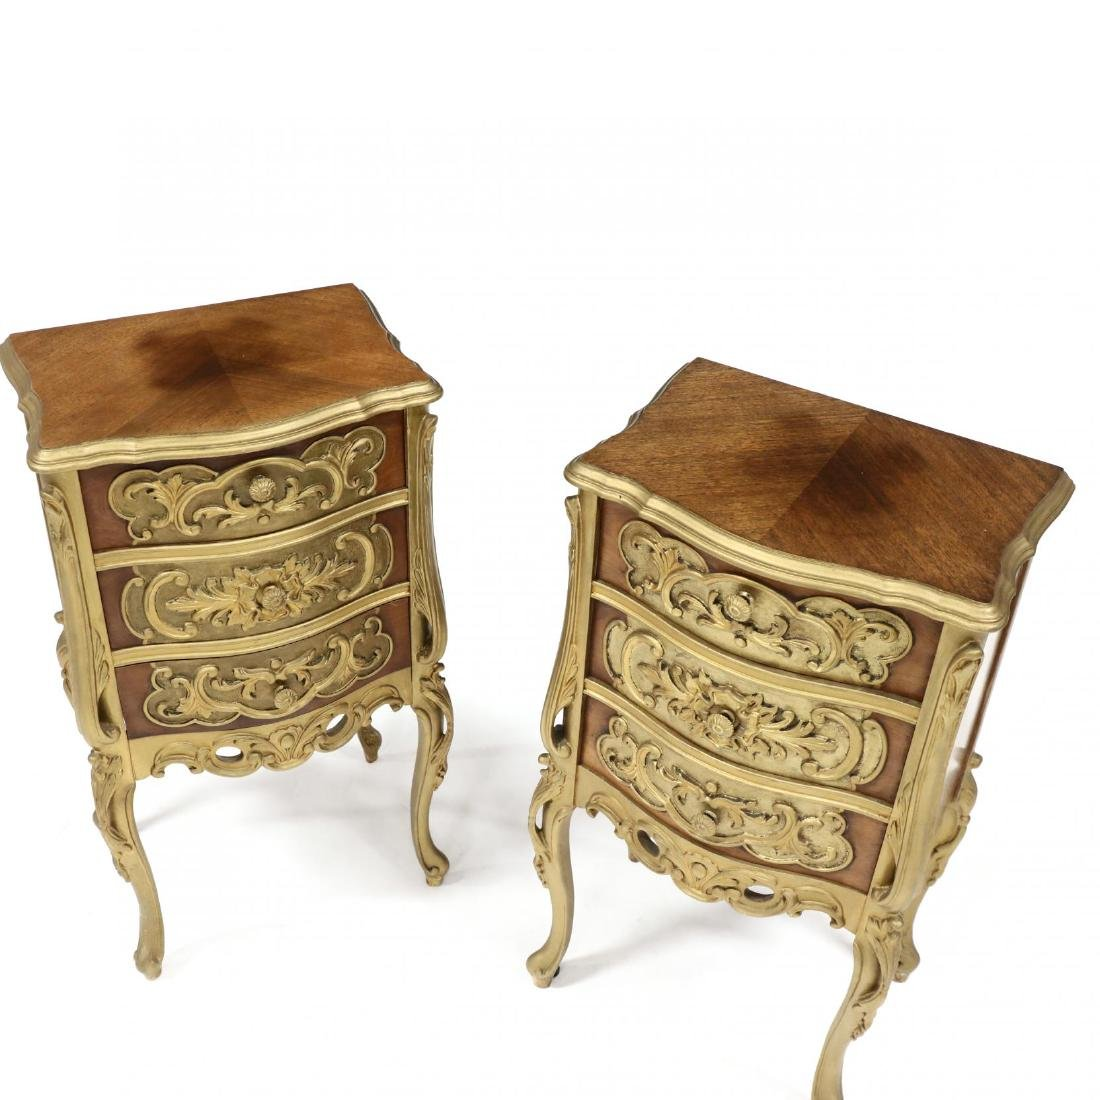 Pair of Italian Rococo Style Diminutive Chests - 2